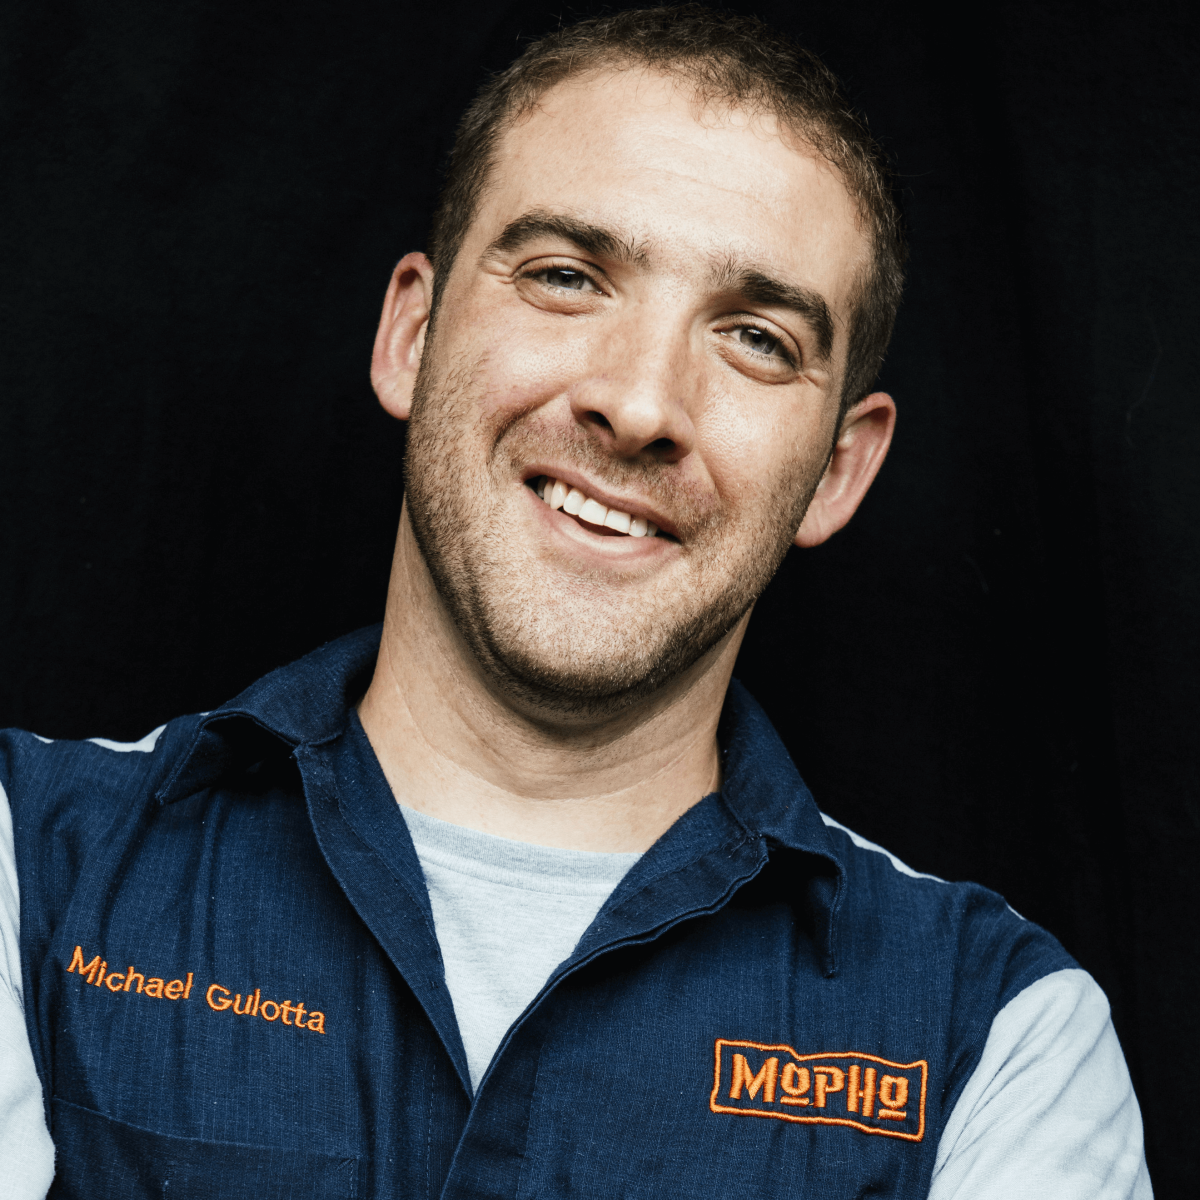 Chef Michael Gulotta of MoPho in New Orleans